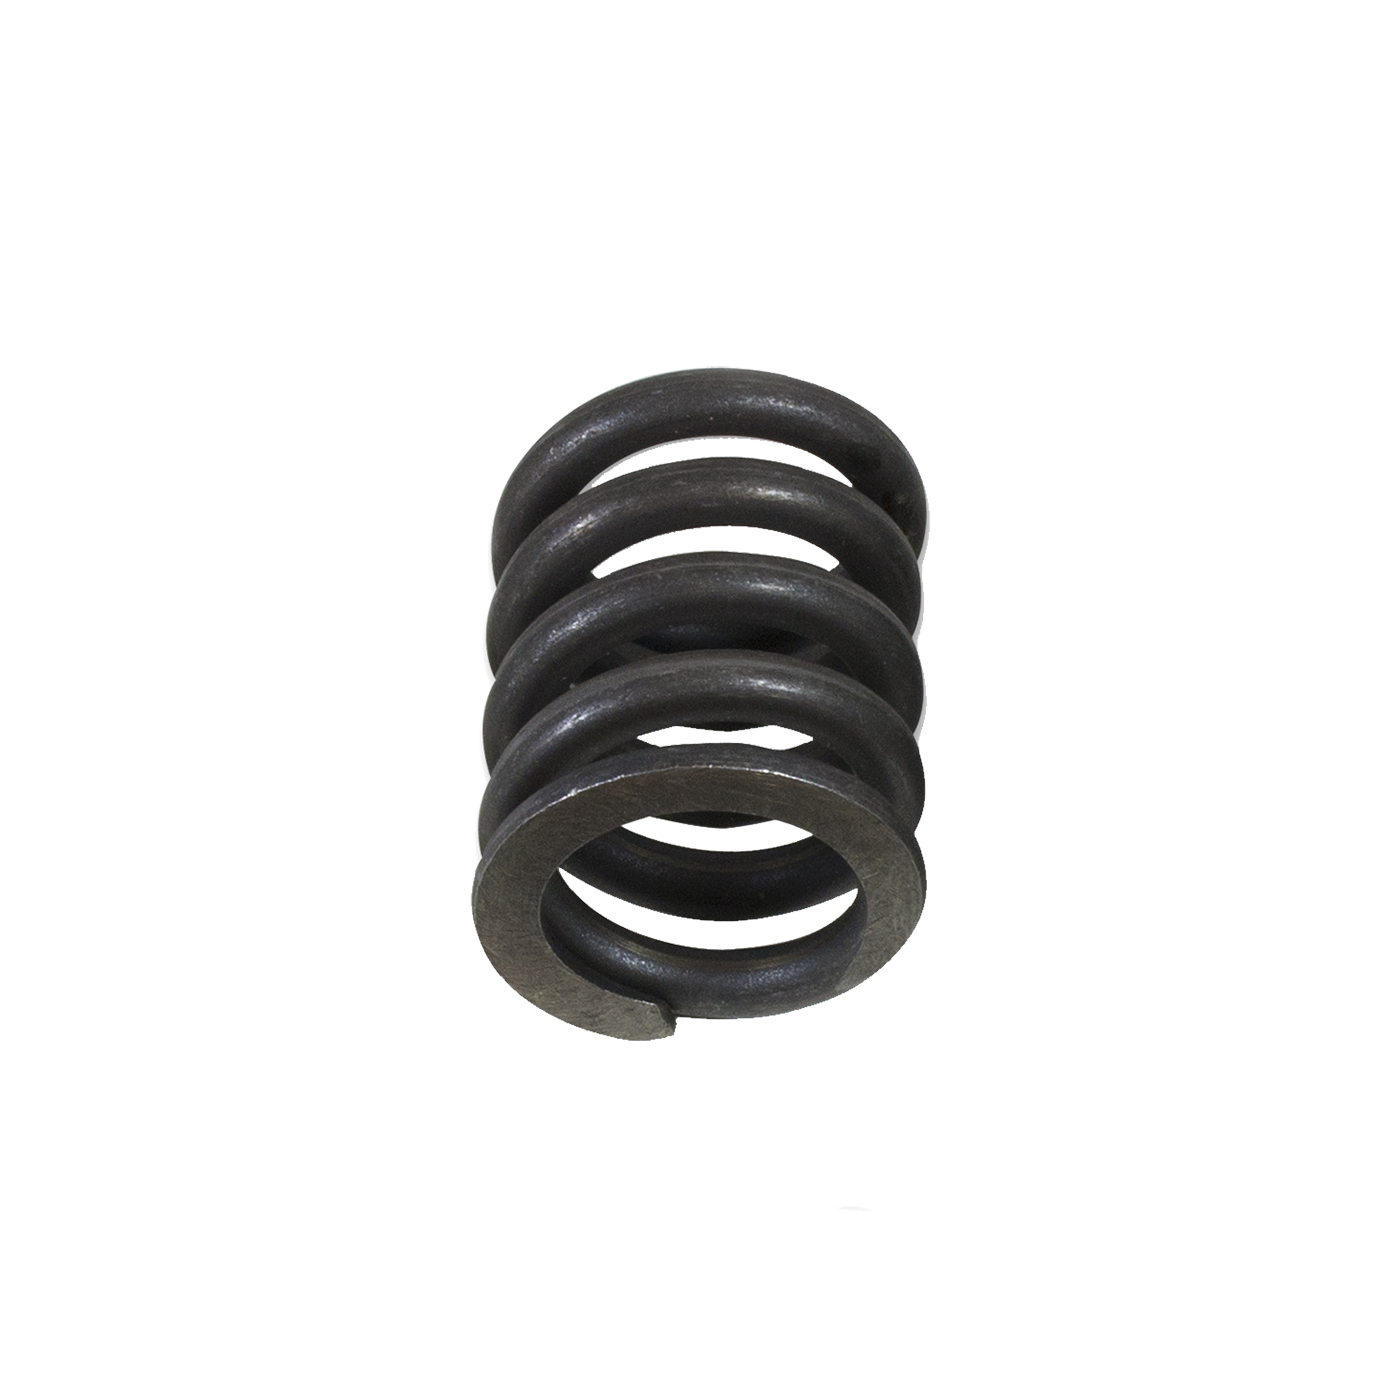 YP KP-003 - Replacement upper king-pin bushing spring for Dana 60